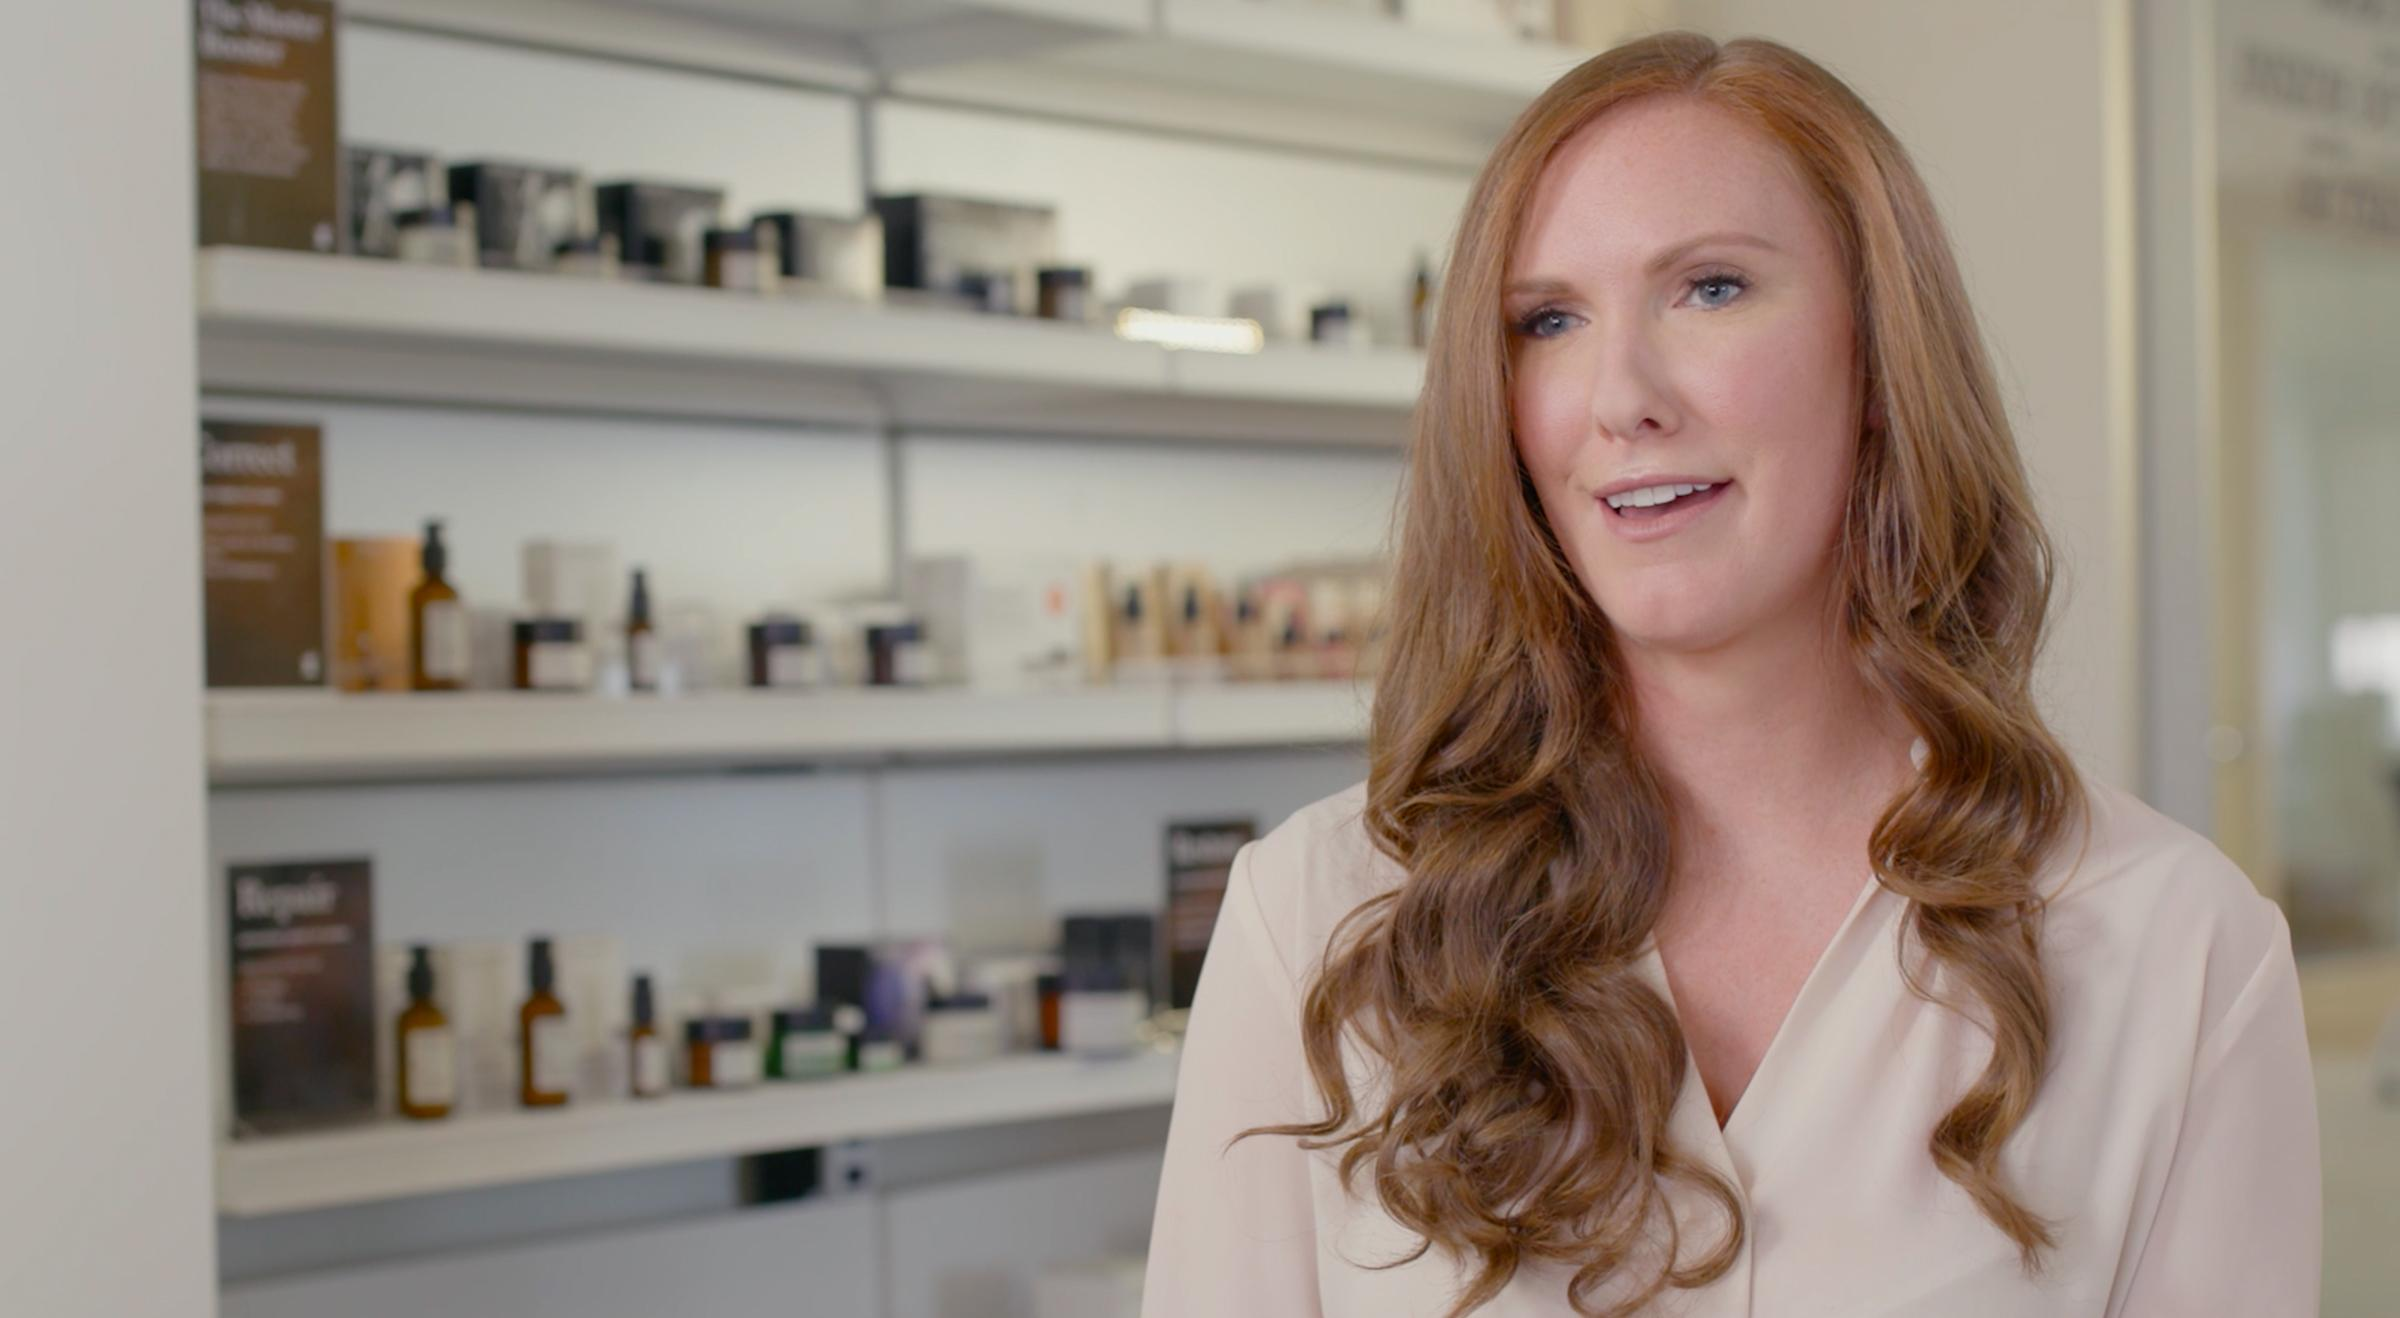 Alissa-Skin-Perfecting-Serum-Launch1080p